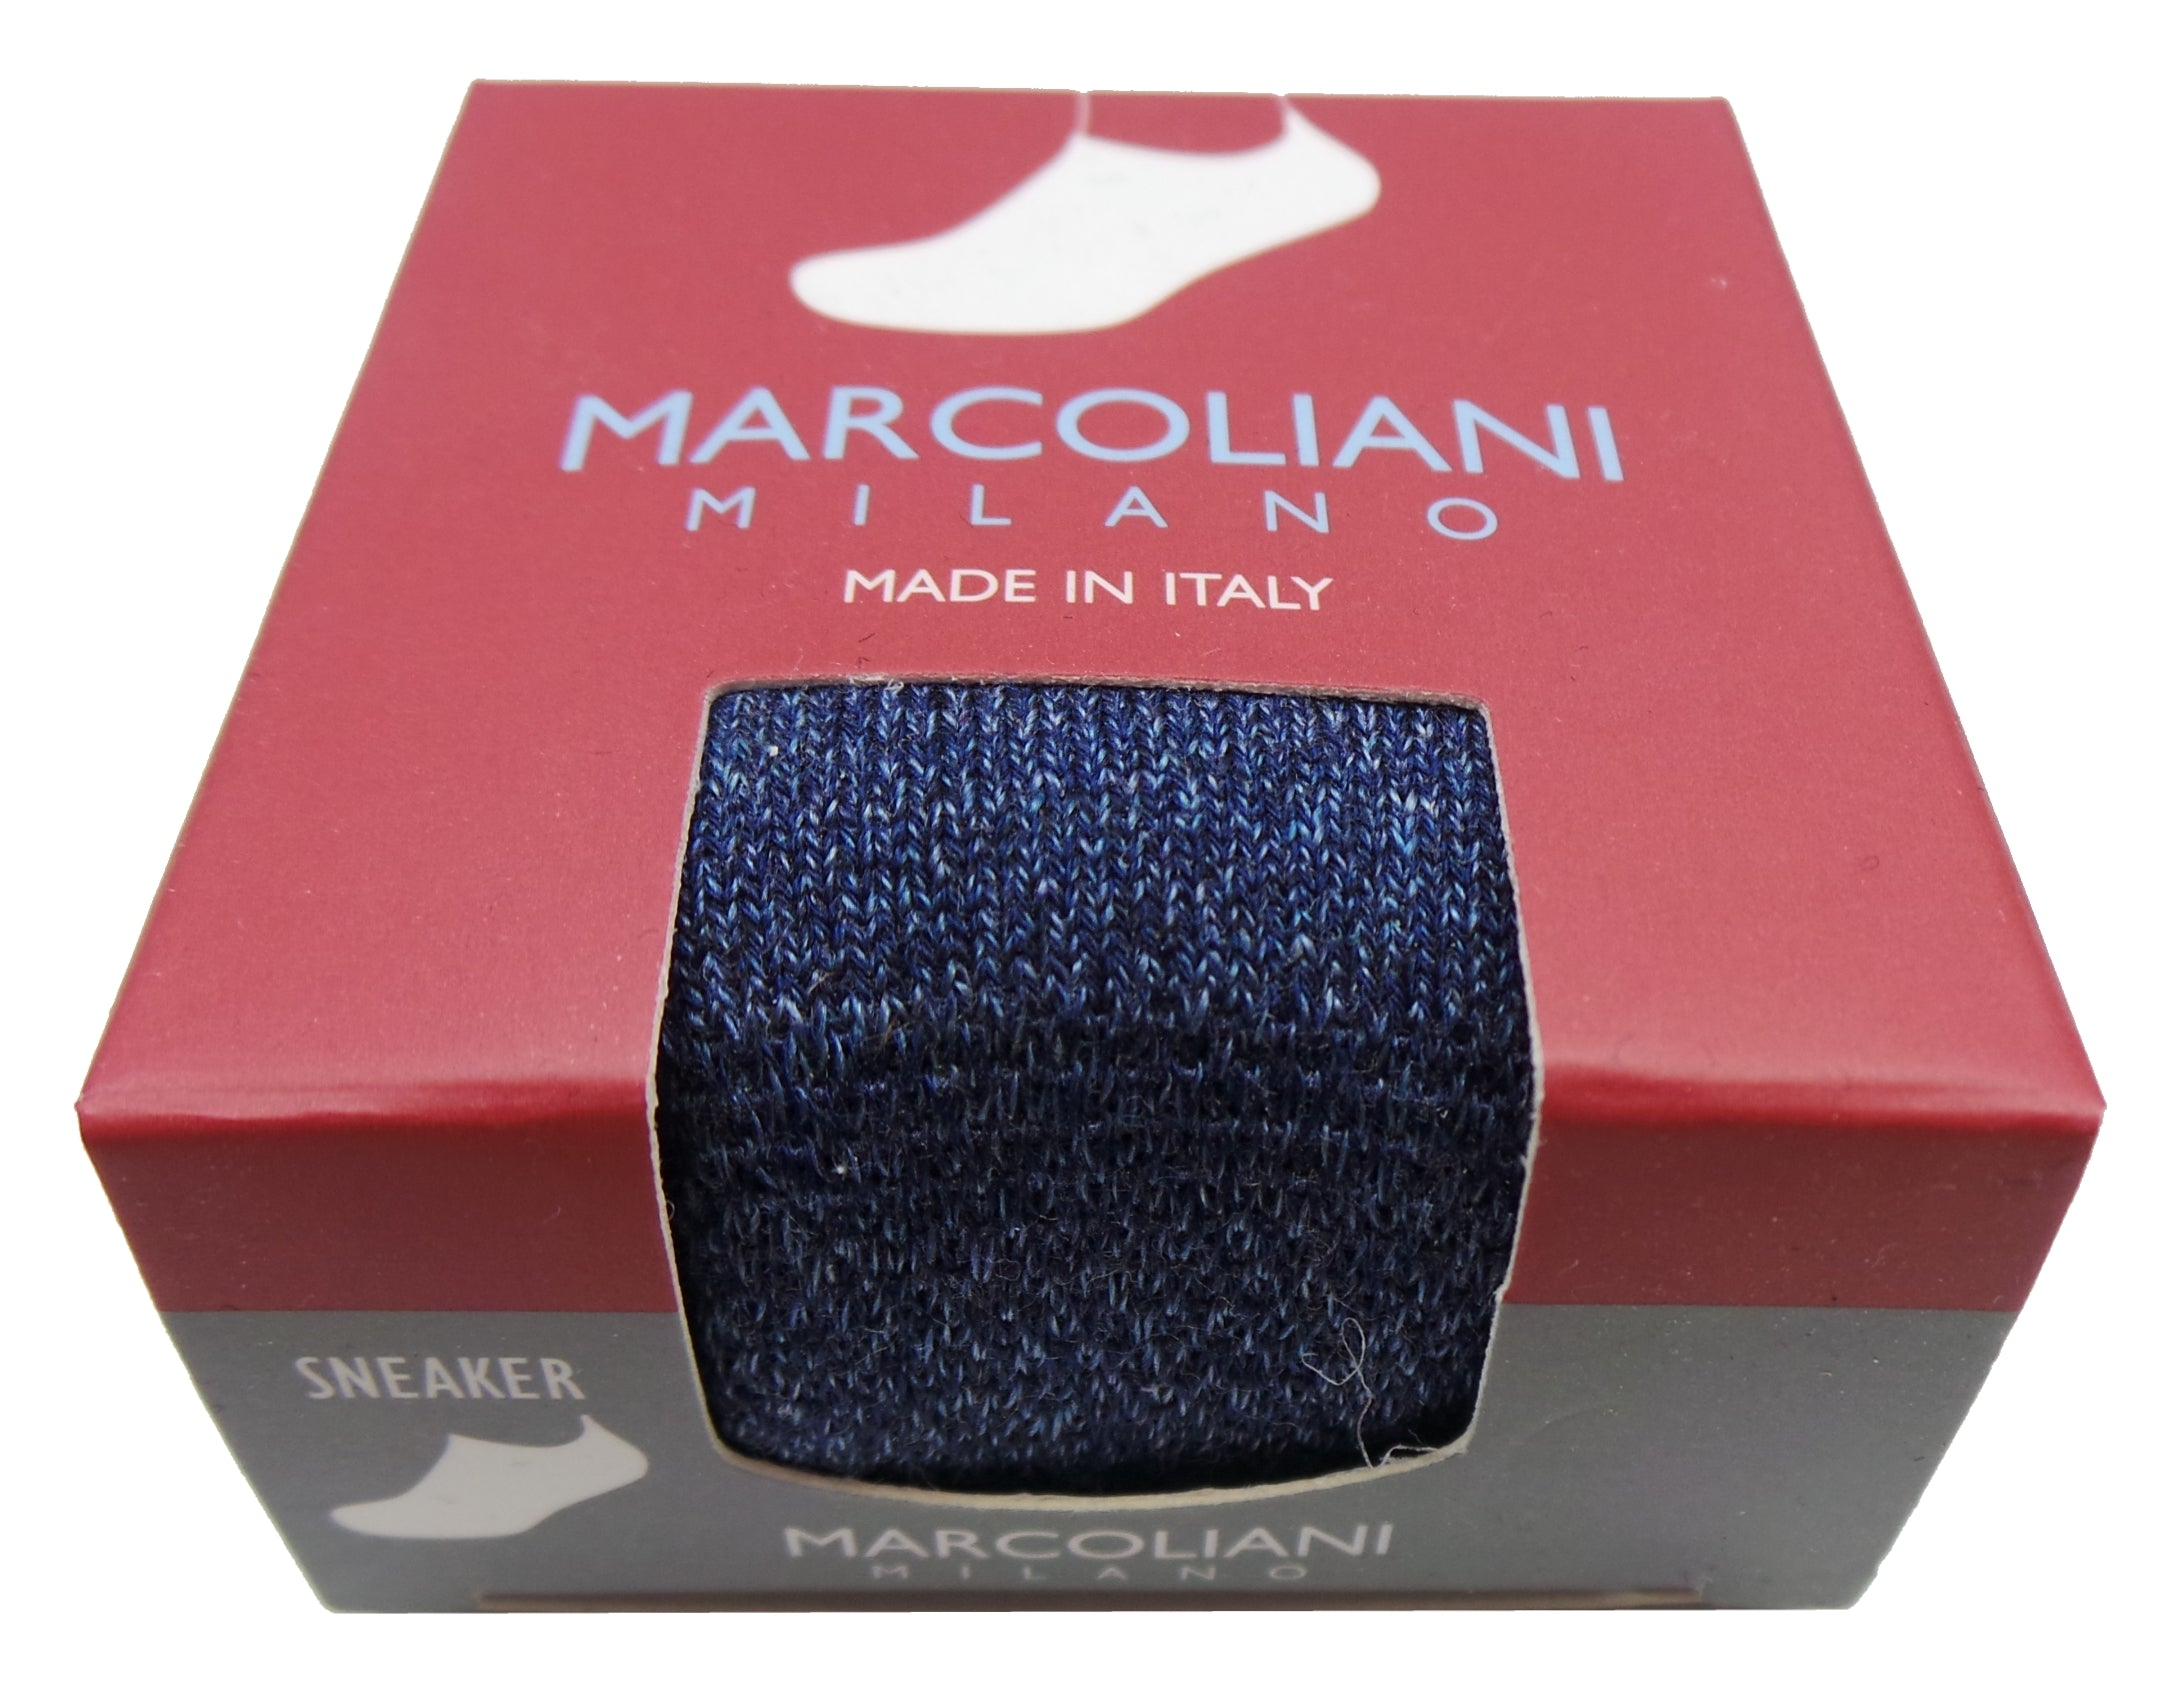 Marcoliani Sneaker No-Show Socks